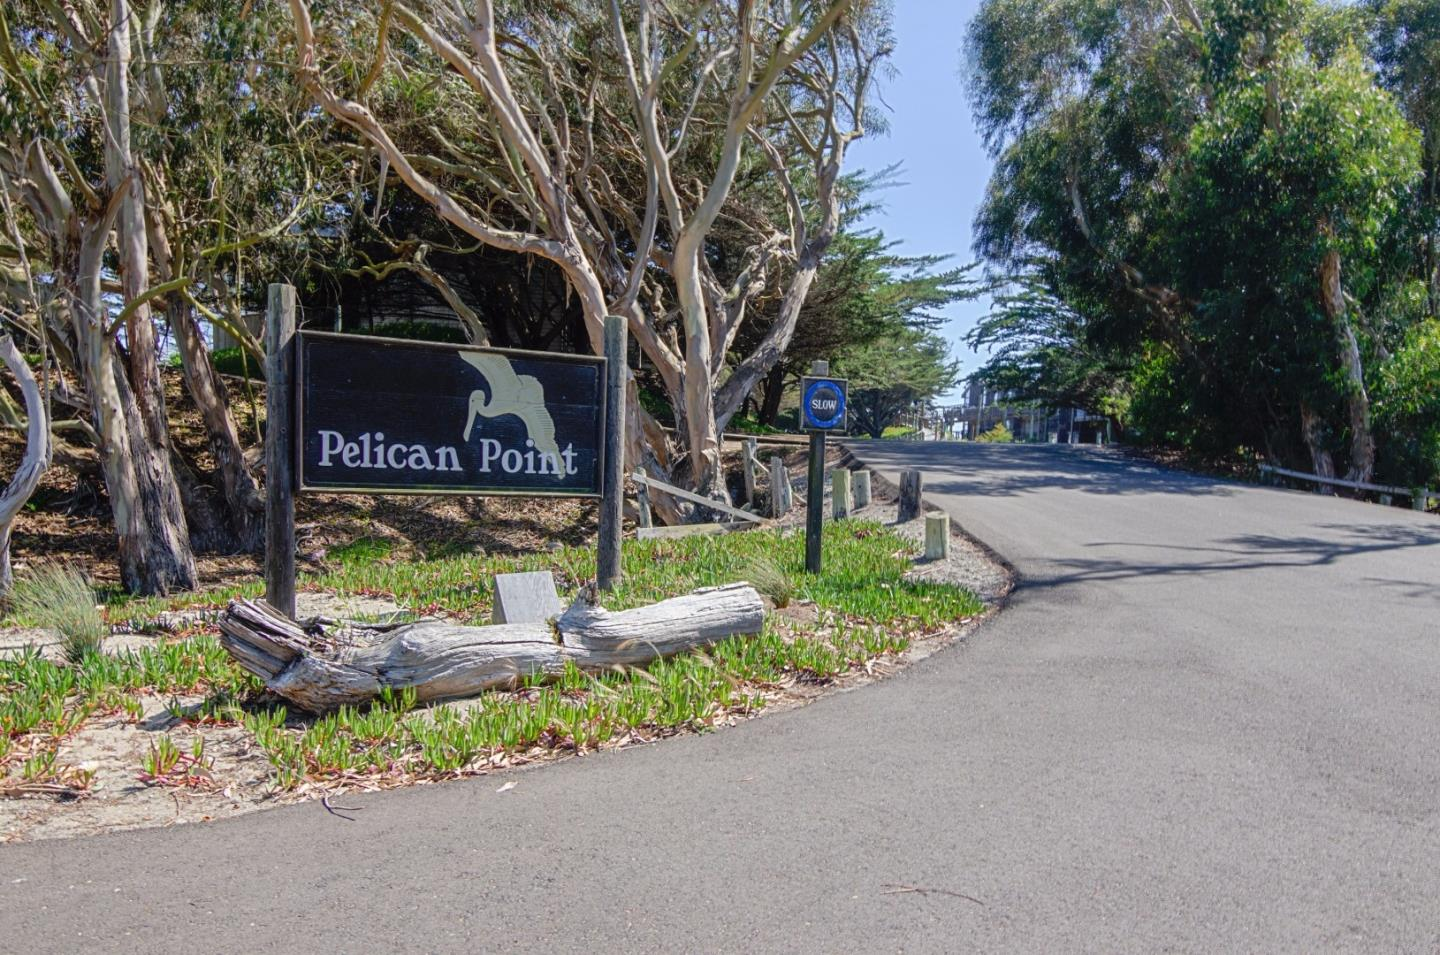 Additional photo for property listing at 72 Pelican Point 72 Pelican Point Watsonville, California 95076 Estados Unidos